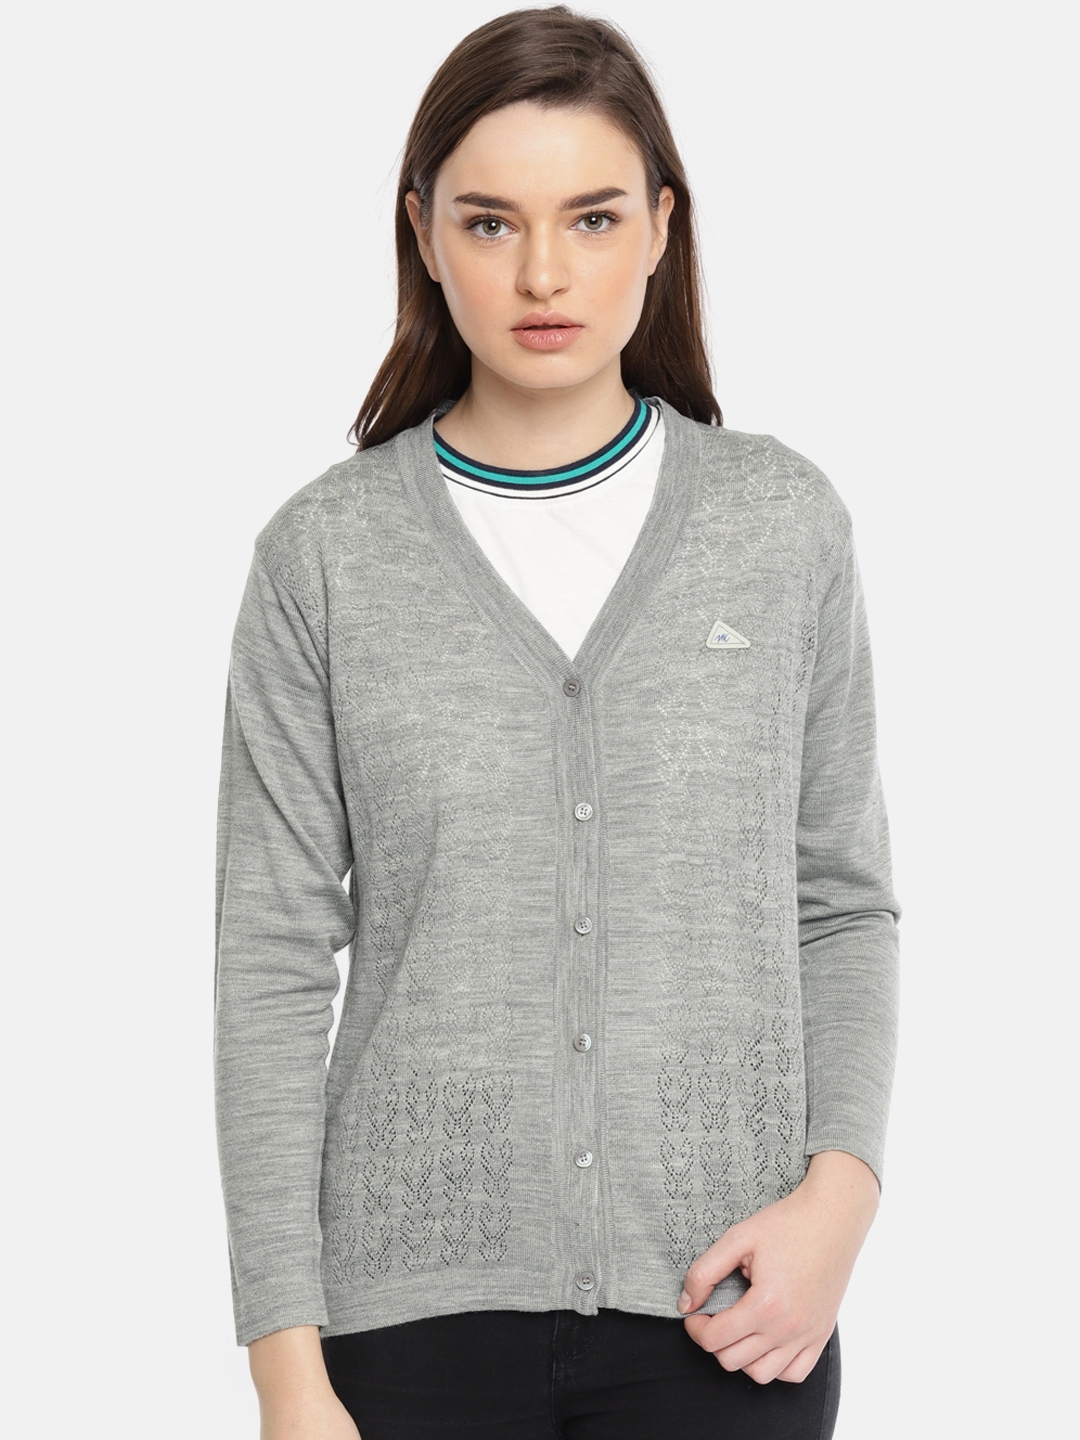 Monte Carlo Women Grey Self Design Cardigan